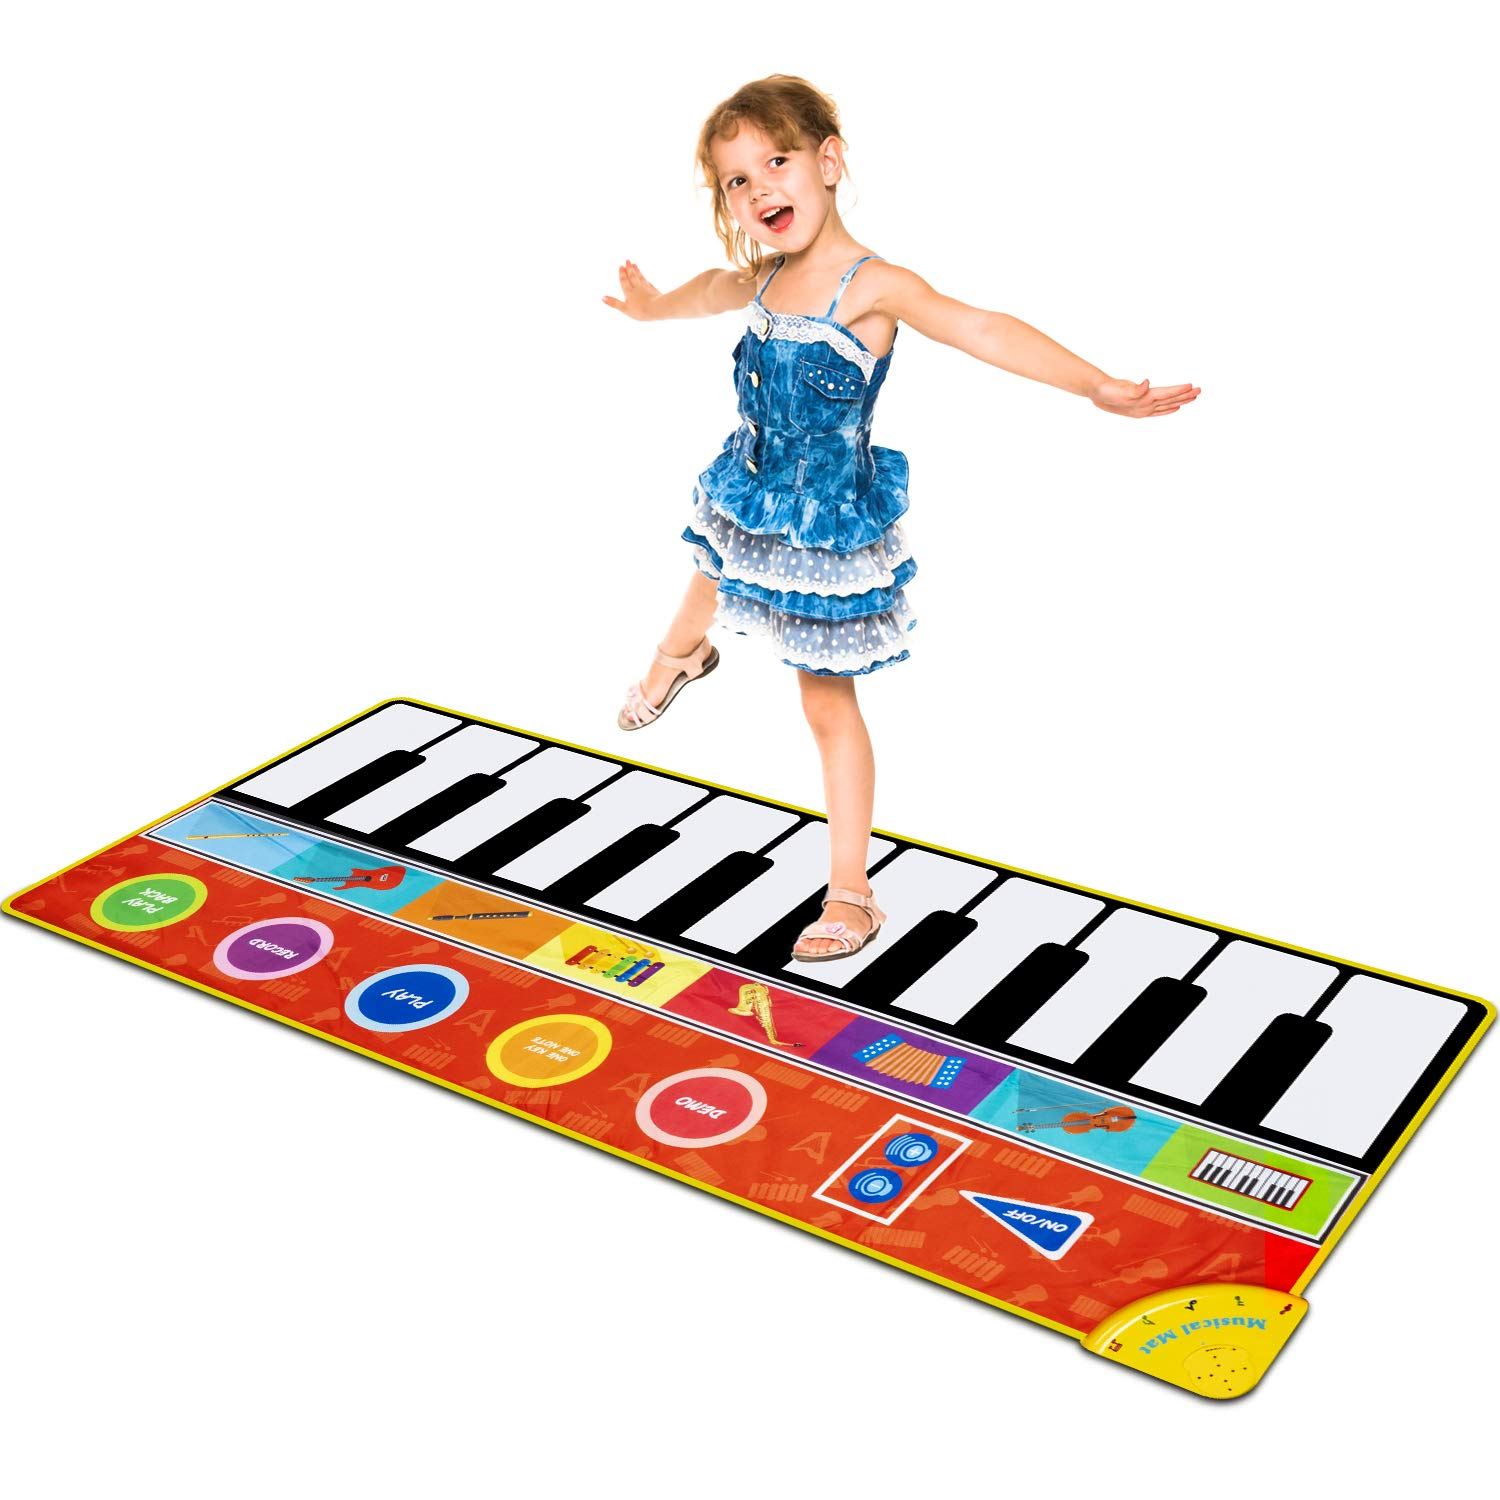 Cyiecw Piano Music Mat, Music Dance Mat Keyboard Playmat with 19 Keys Piano Mat, 8 Selectable Musical Instruments Build-in Speaker & Recording Function for Kids Girls Boys, 58.26 x 23.62 inches by Cyiecw